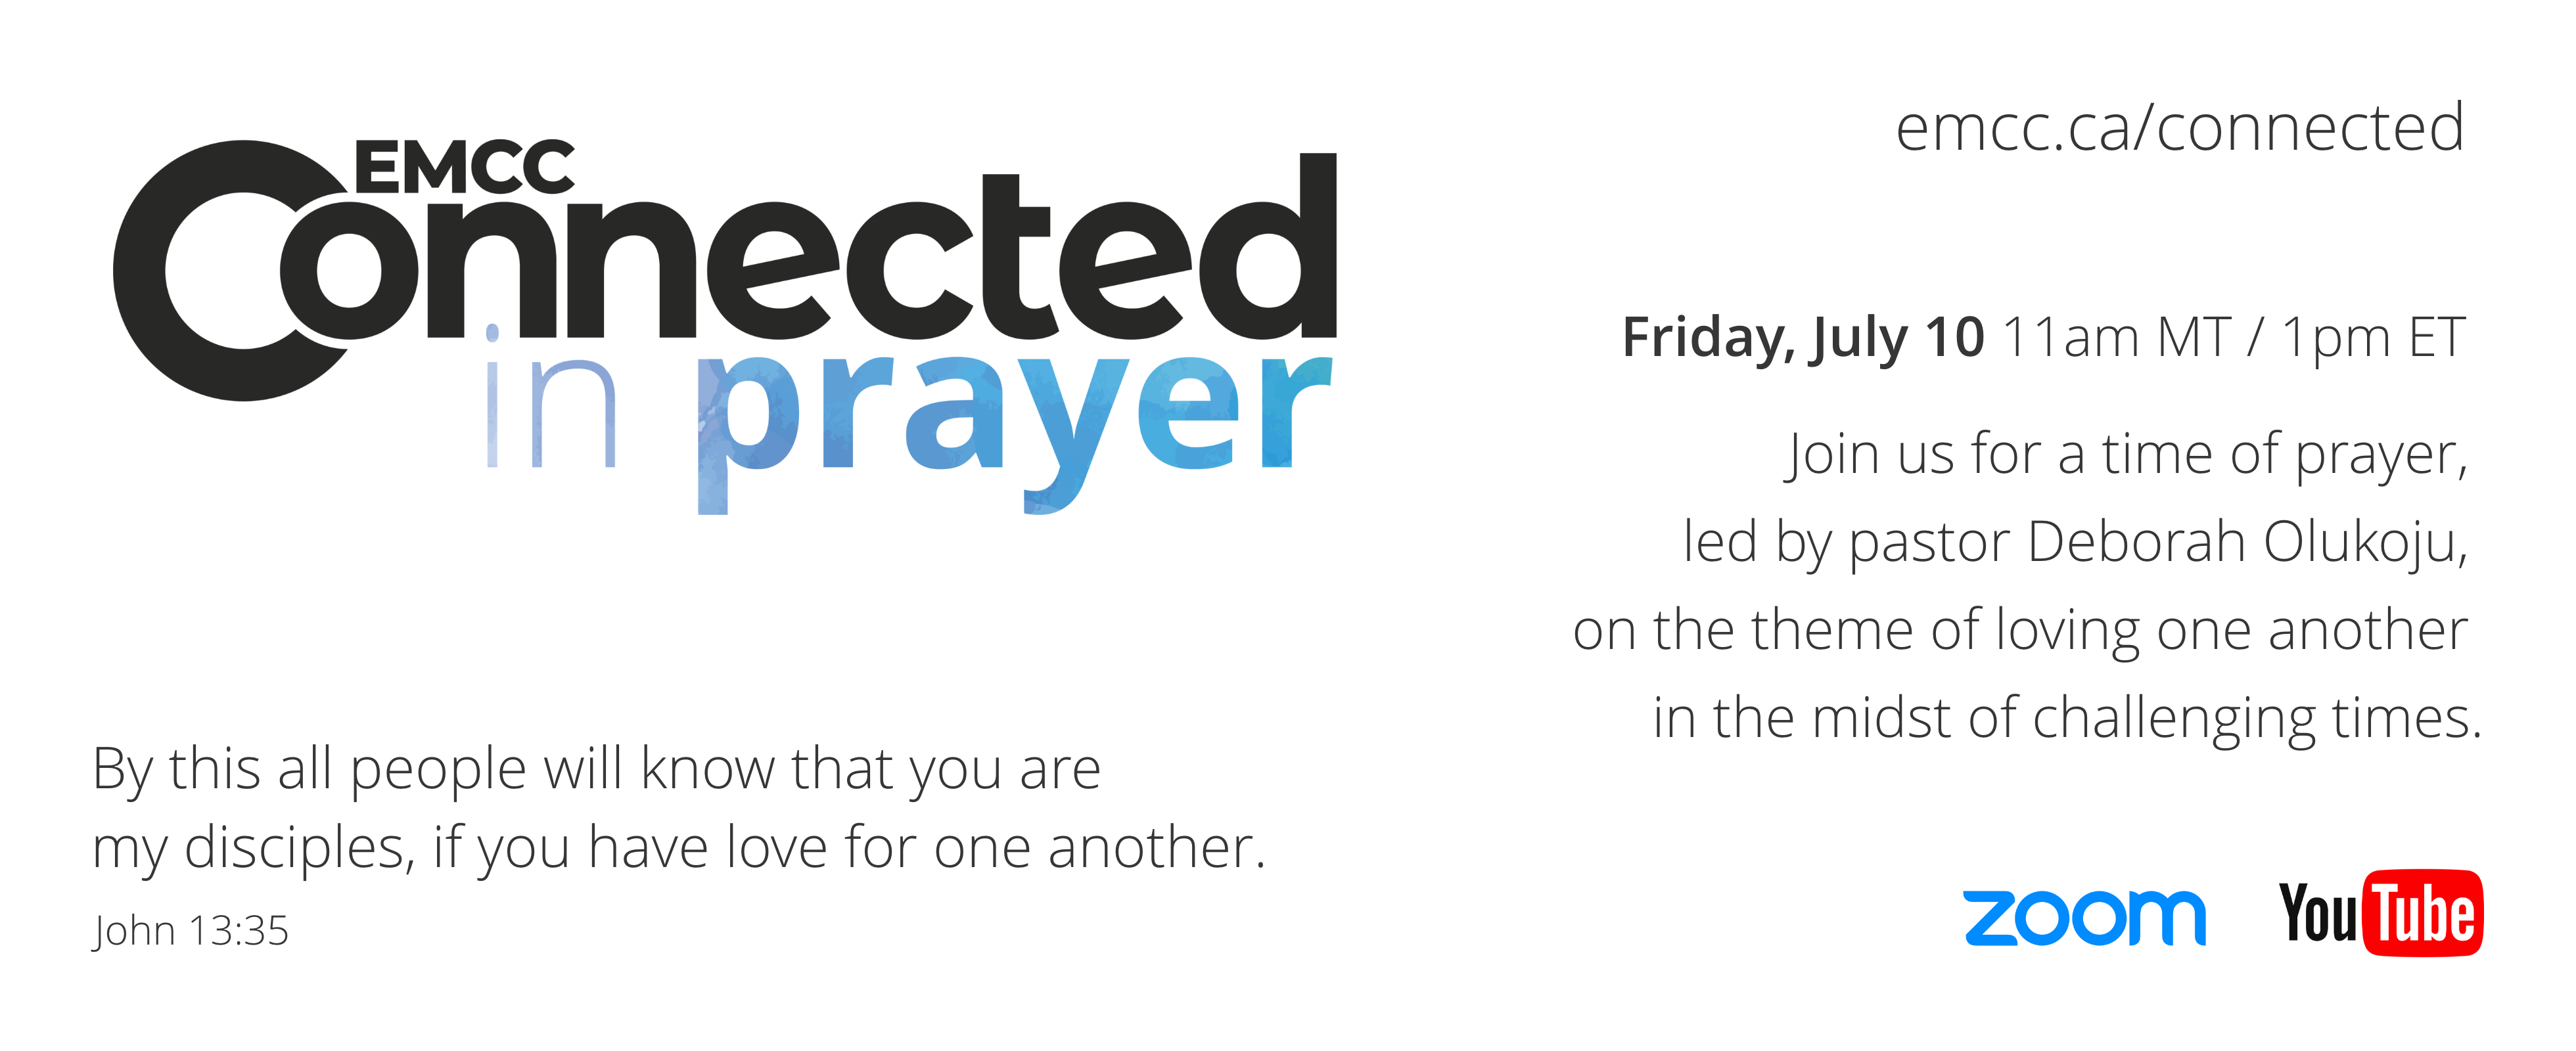 EMCC Connected in Prayer - July 10